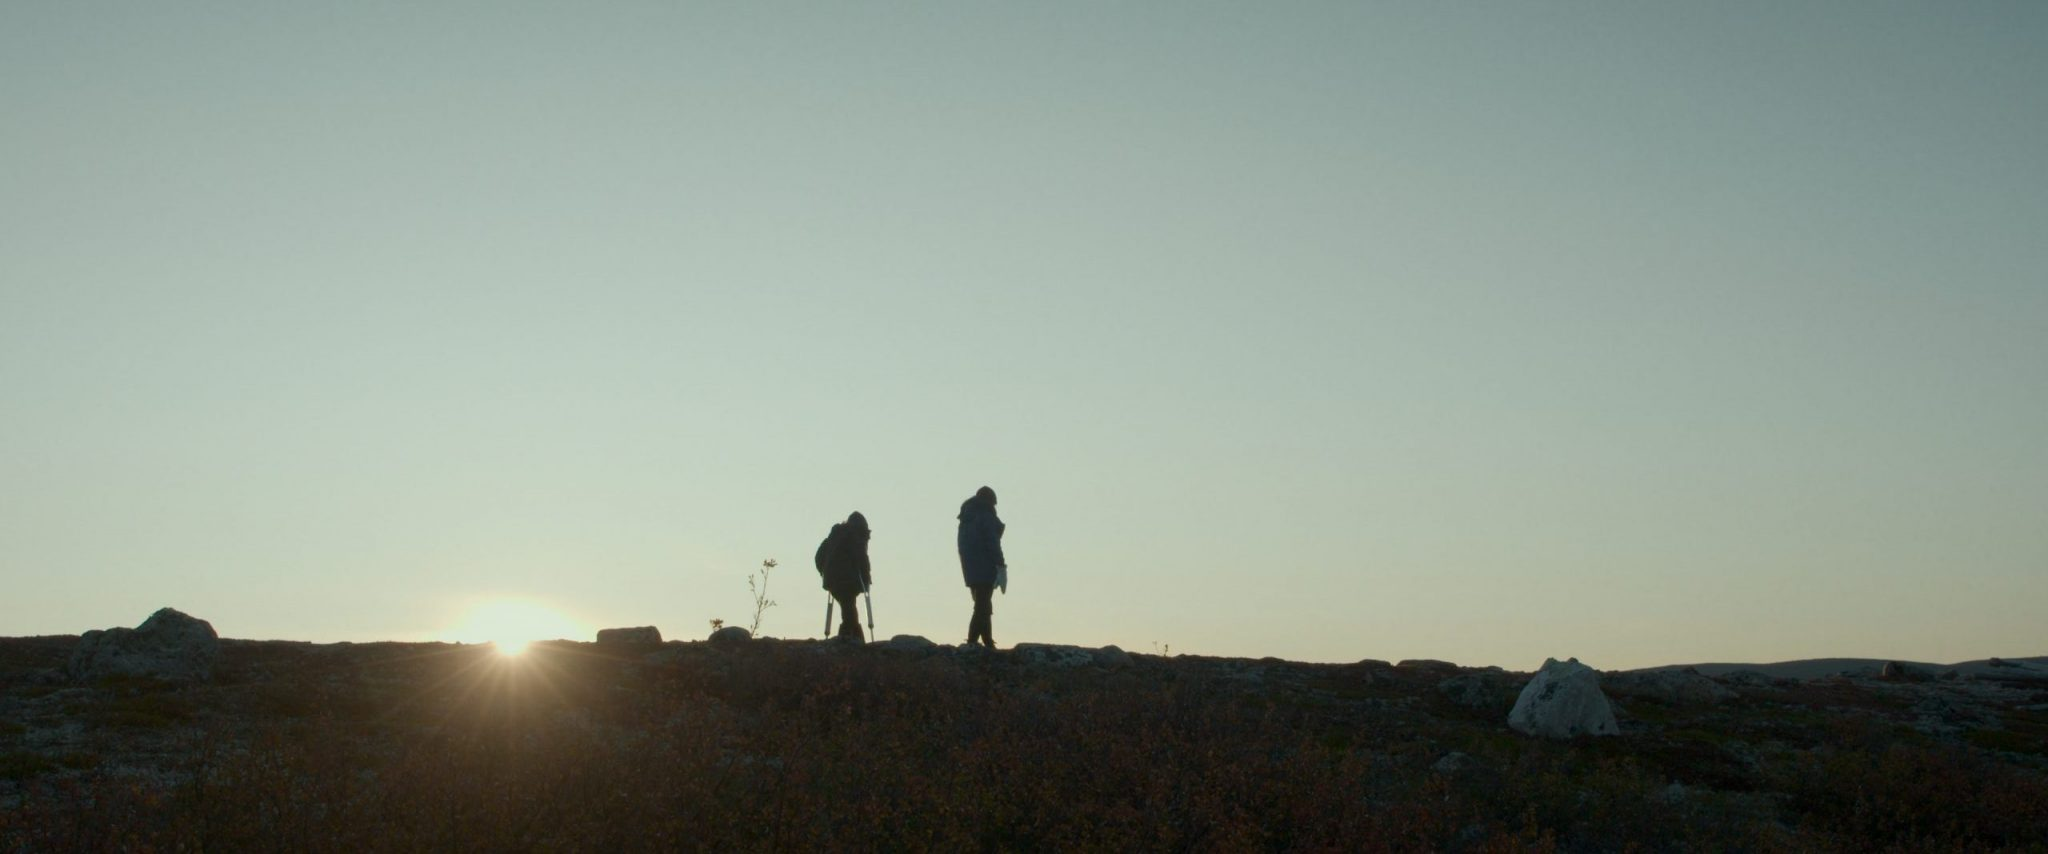 """A still from """"Call Me Human"""". A sillhouette of two people on a hilltop as the sun sets behind them on the left side of the frame. There are light rays spreading out from the disappearing sun, and beyond it the sky is a dusky blue, taking up most of the image. The two figures wear coats and hiking gear and appear to be on a journey."""